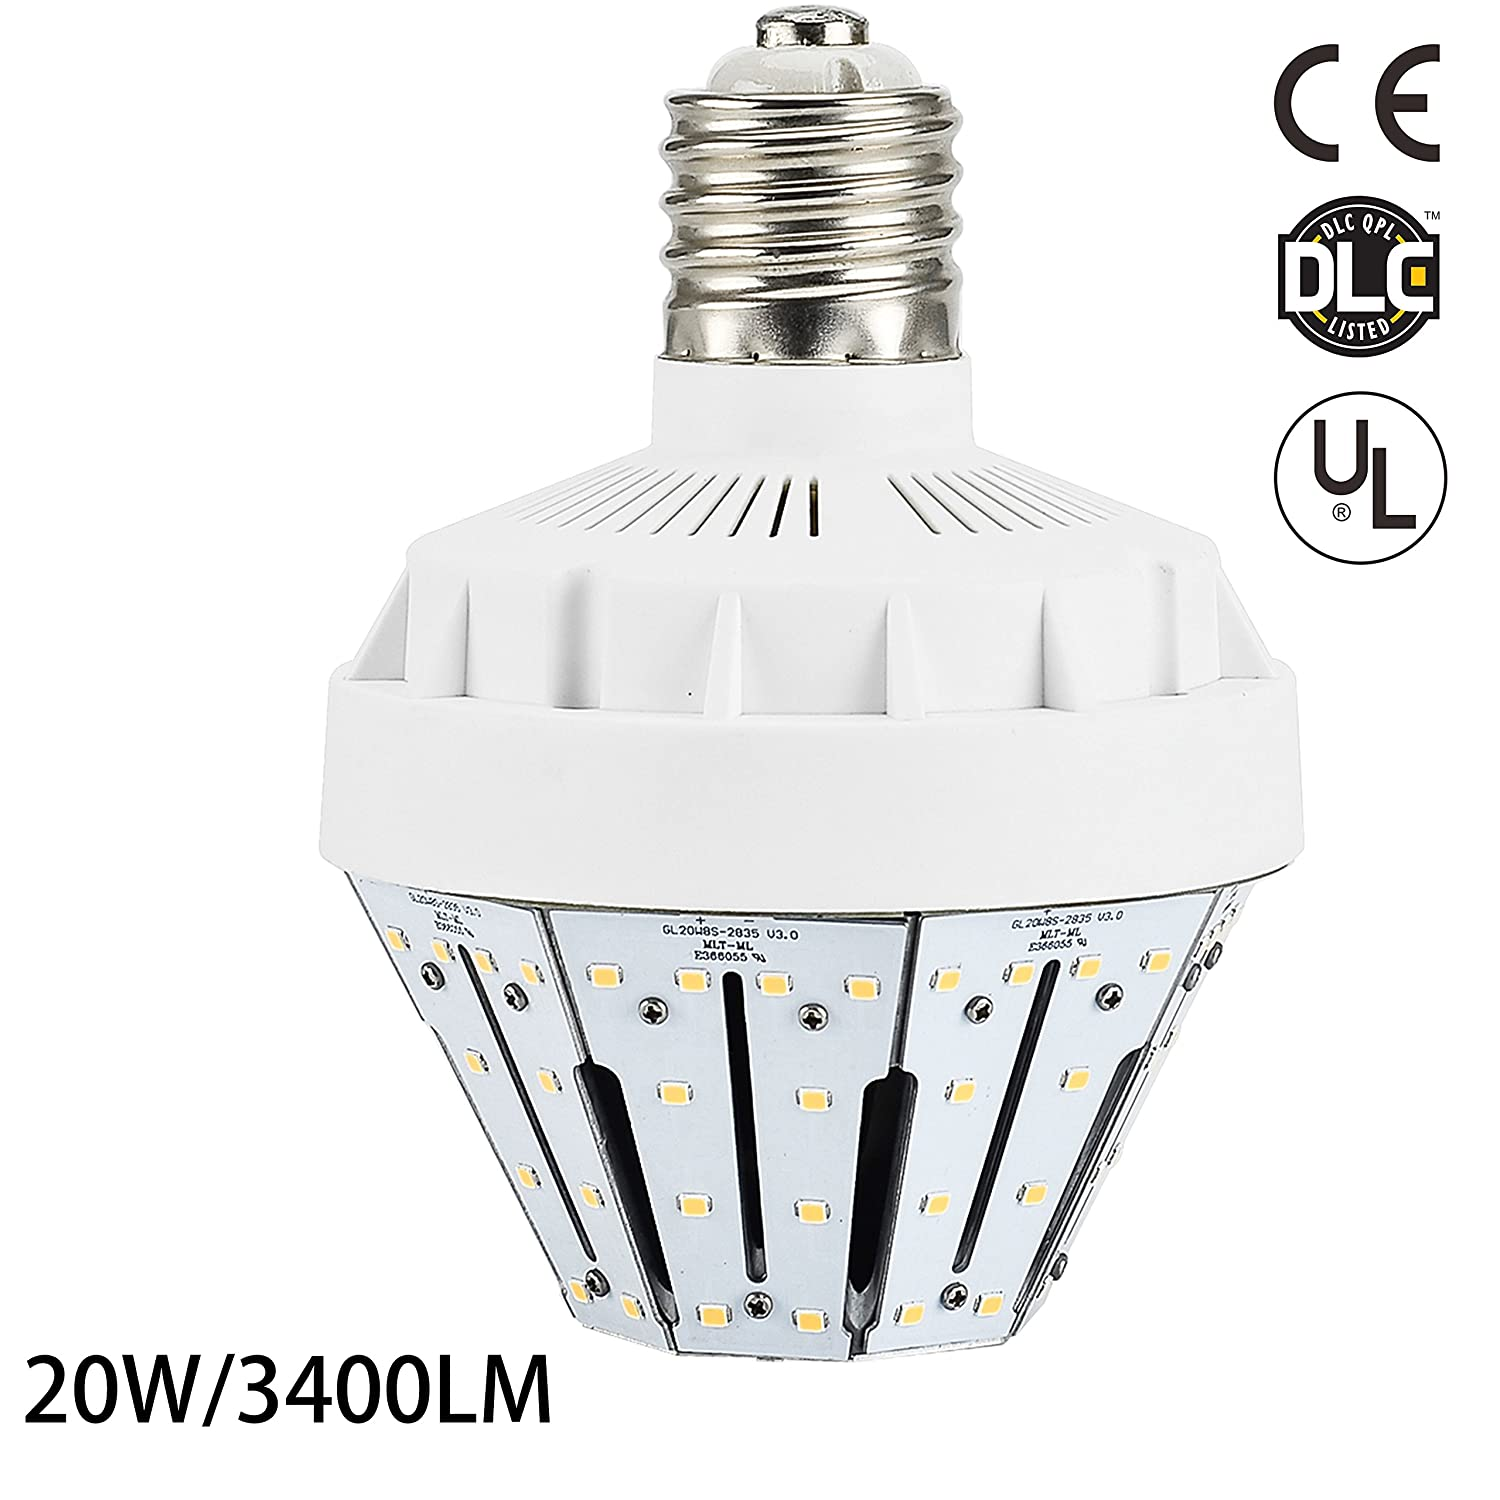 New Sunshine 20w Led Corn Light Bulb For Indoor Outdoor E26 3400lm 3000k Warm White Replacement 75w Cfl Mh Hid Hps Low Bay Street Lamp Post Lighting